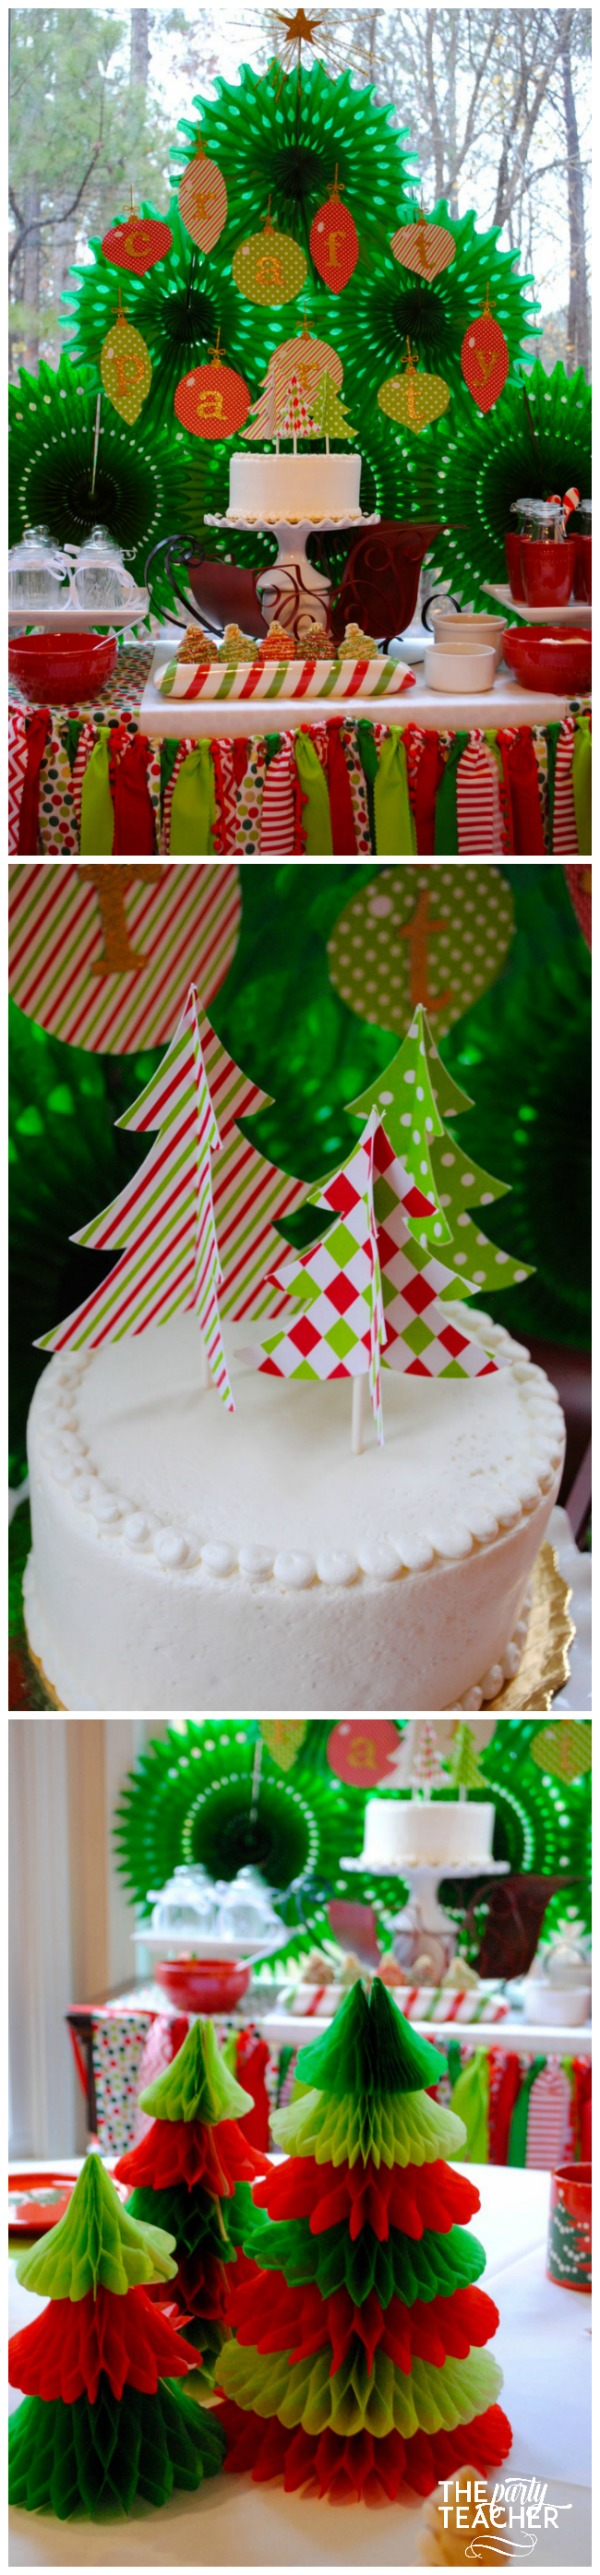 christmas-crafting-party-by-the-party-teacher-a